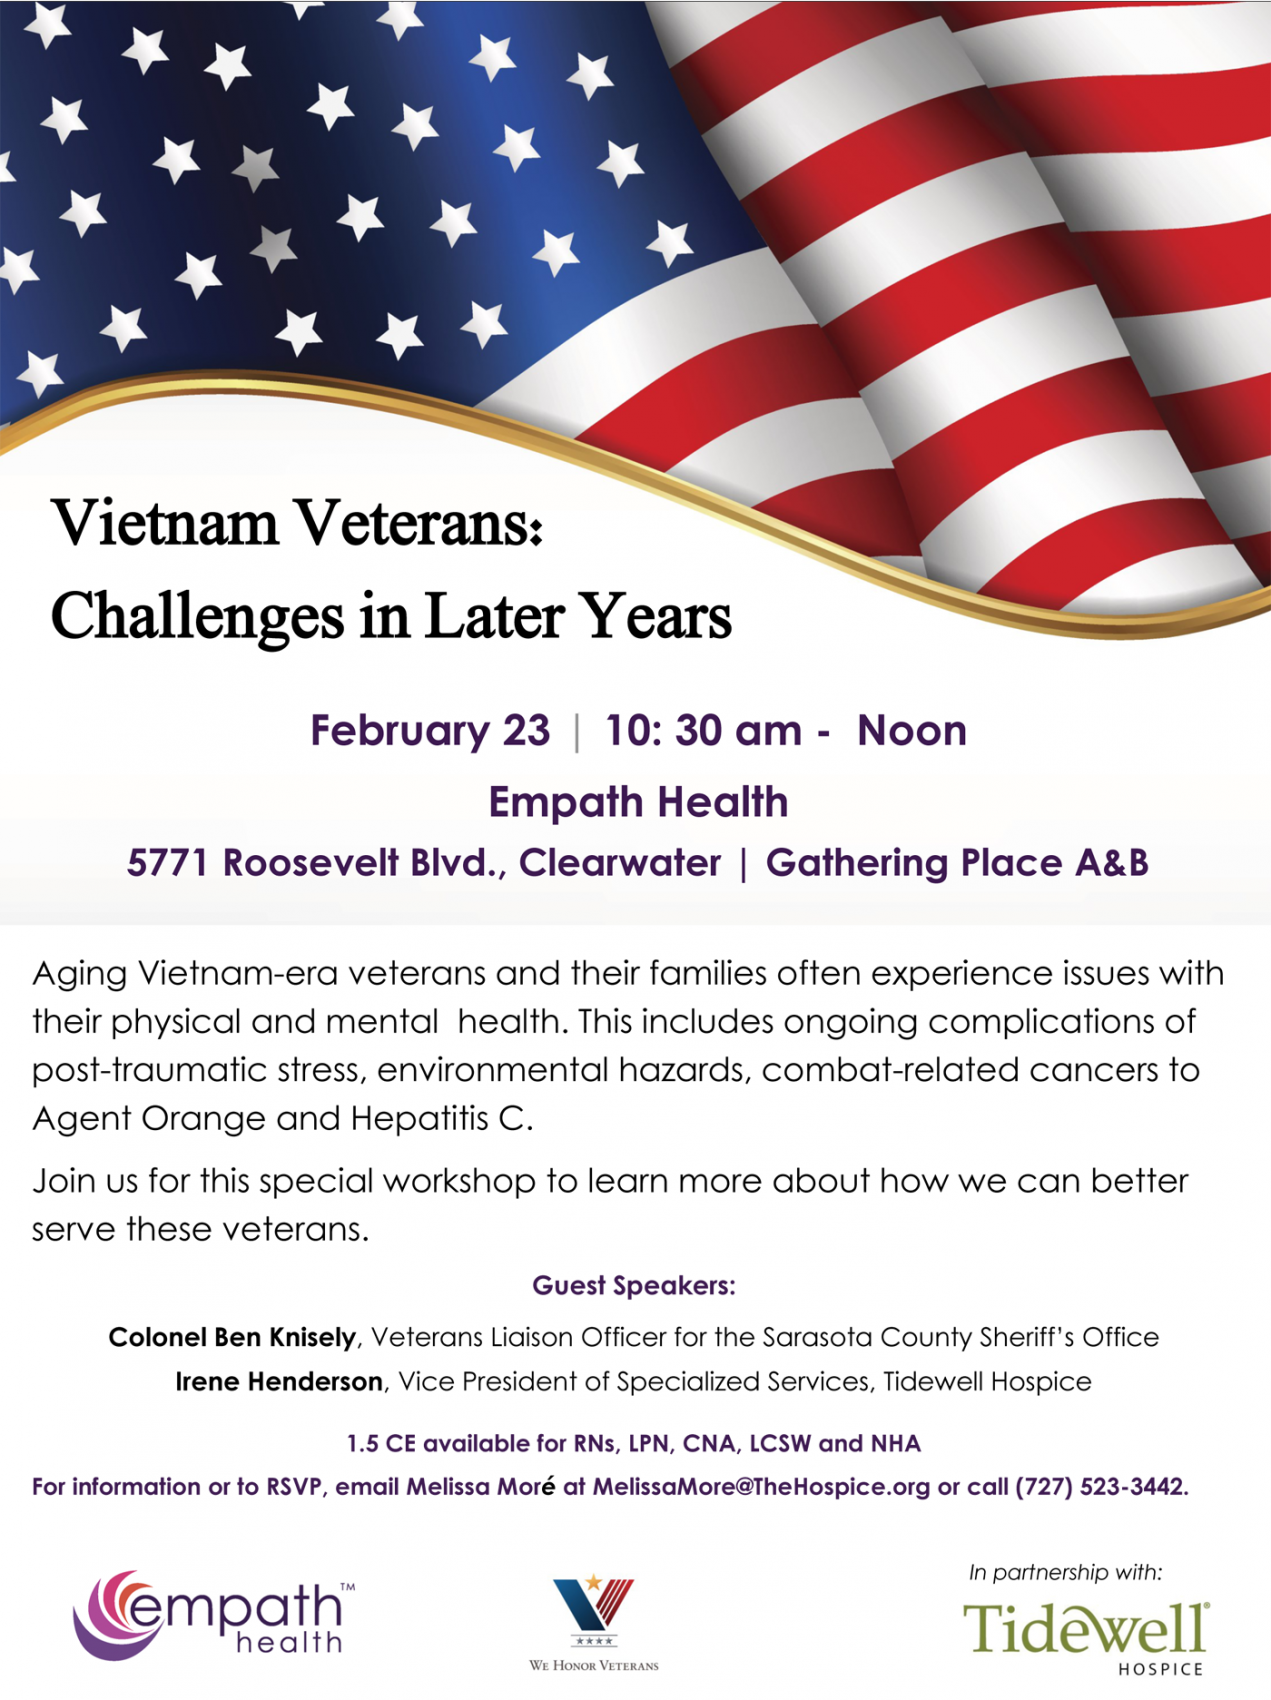 Vietnam Veterans: Challenges in Later Years @ Suncoast Hospice | Empath Health Service Center